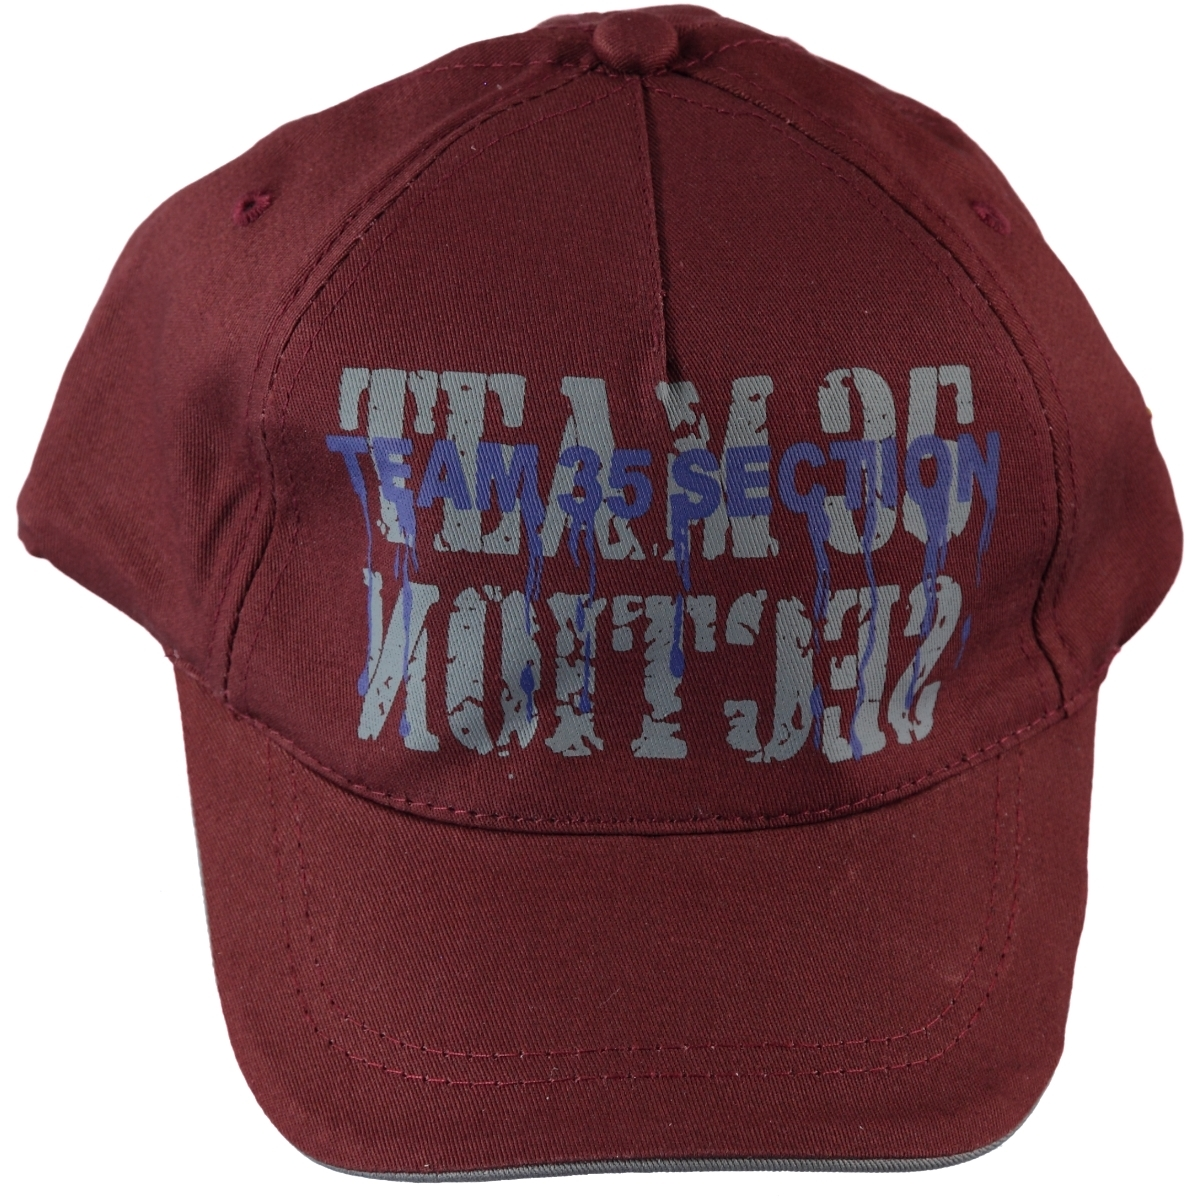 Kitti Boy Cap Hat Burgundy The Ages Of 9-15